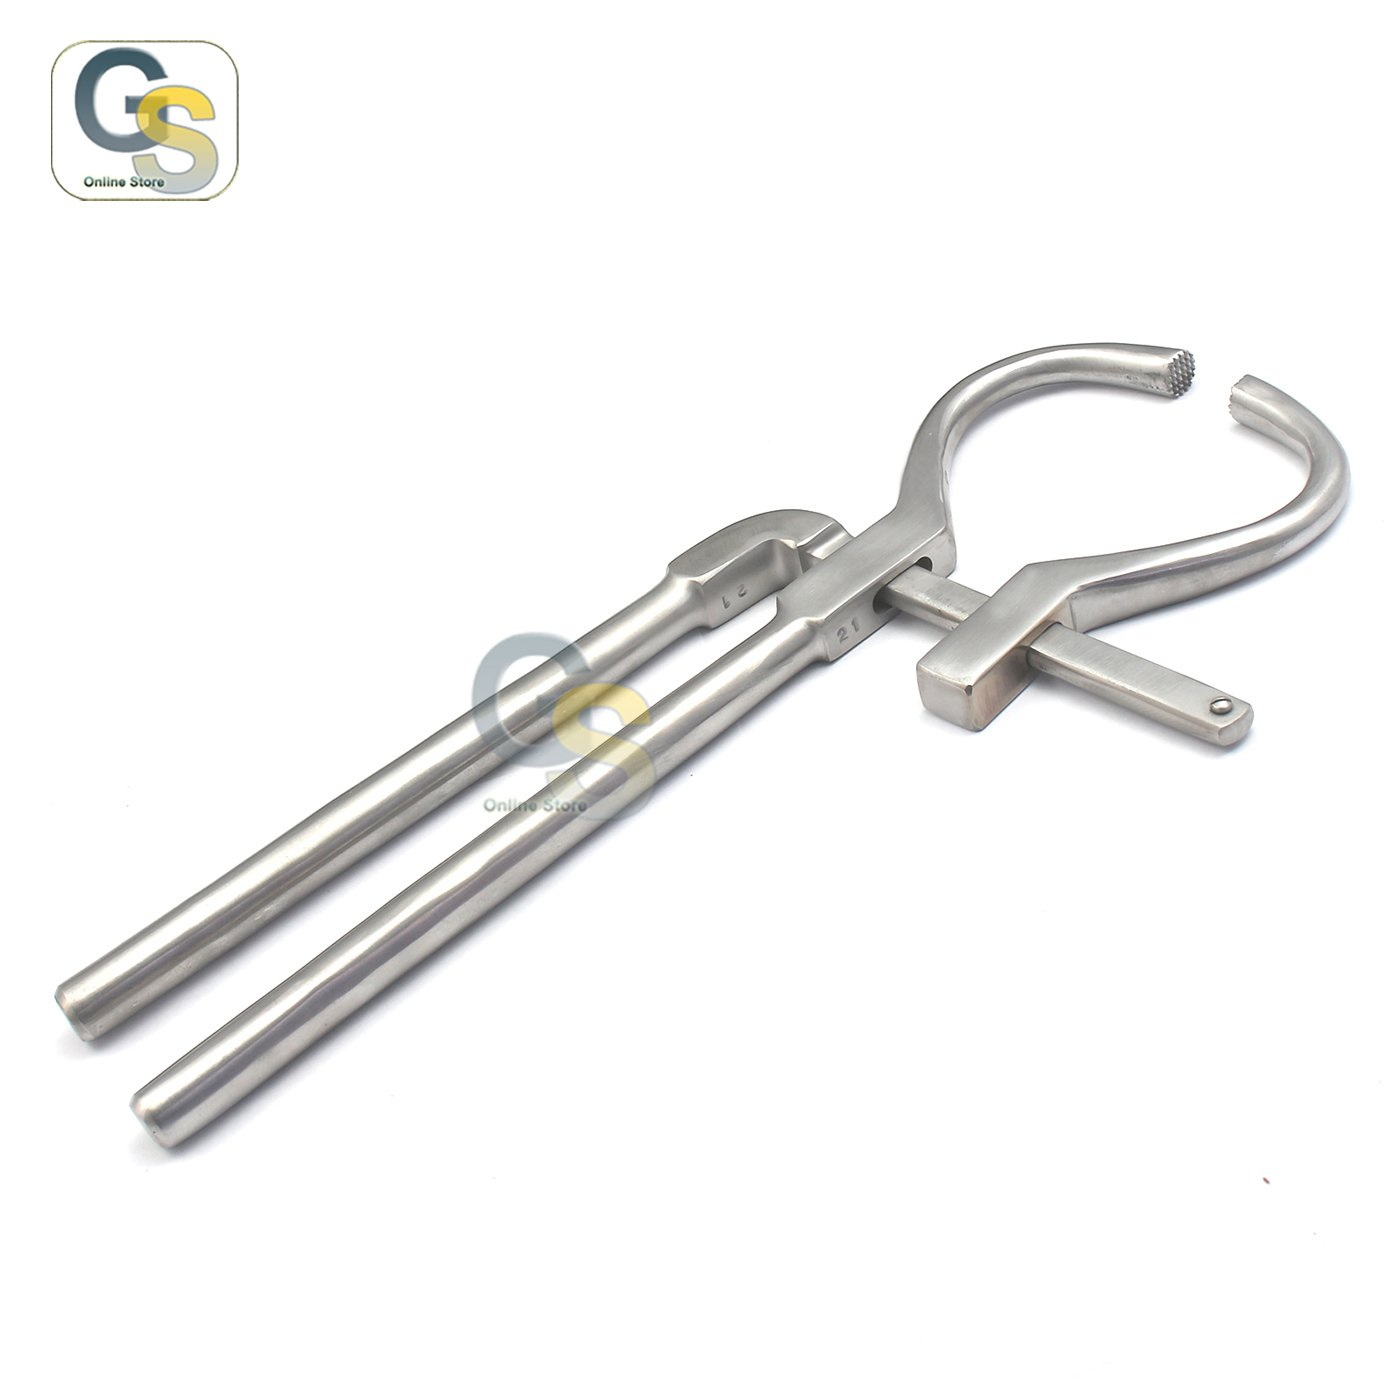 G.S ONLINE STORE G.S Adjustable HOOF Tester Pliers 13'' Horse Foot Stainless Steel Veterinary Diamond Cut Edge